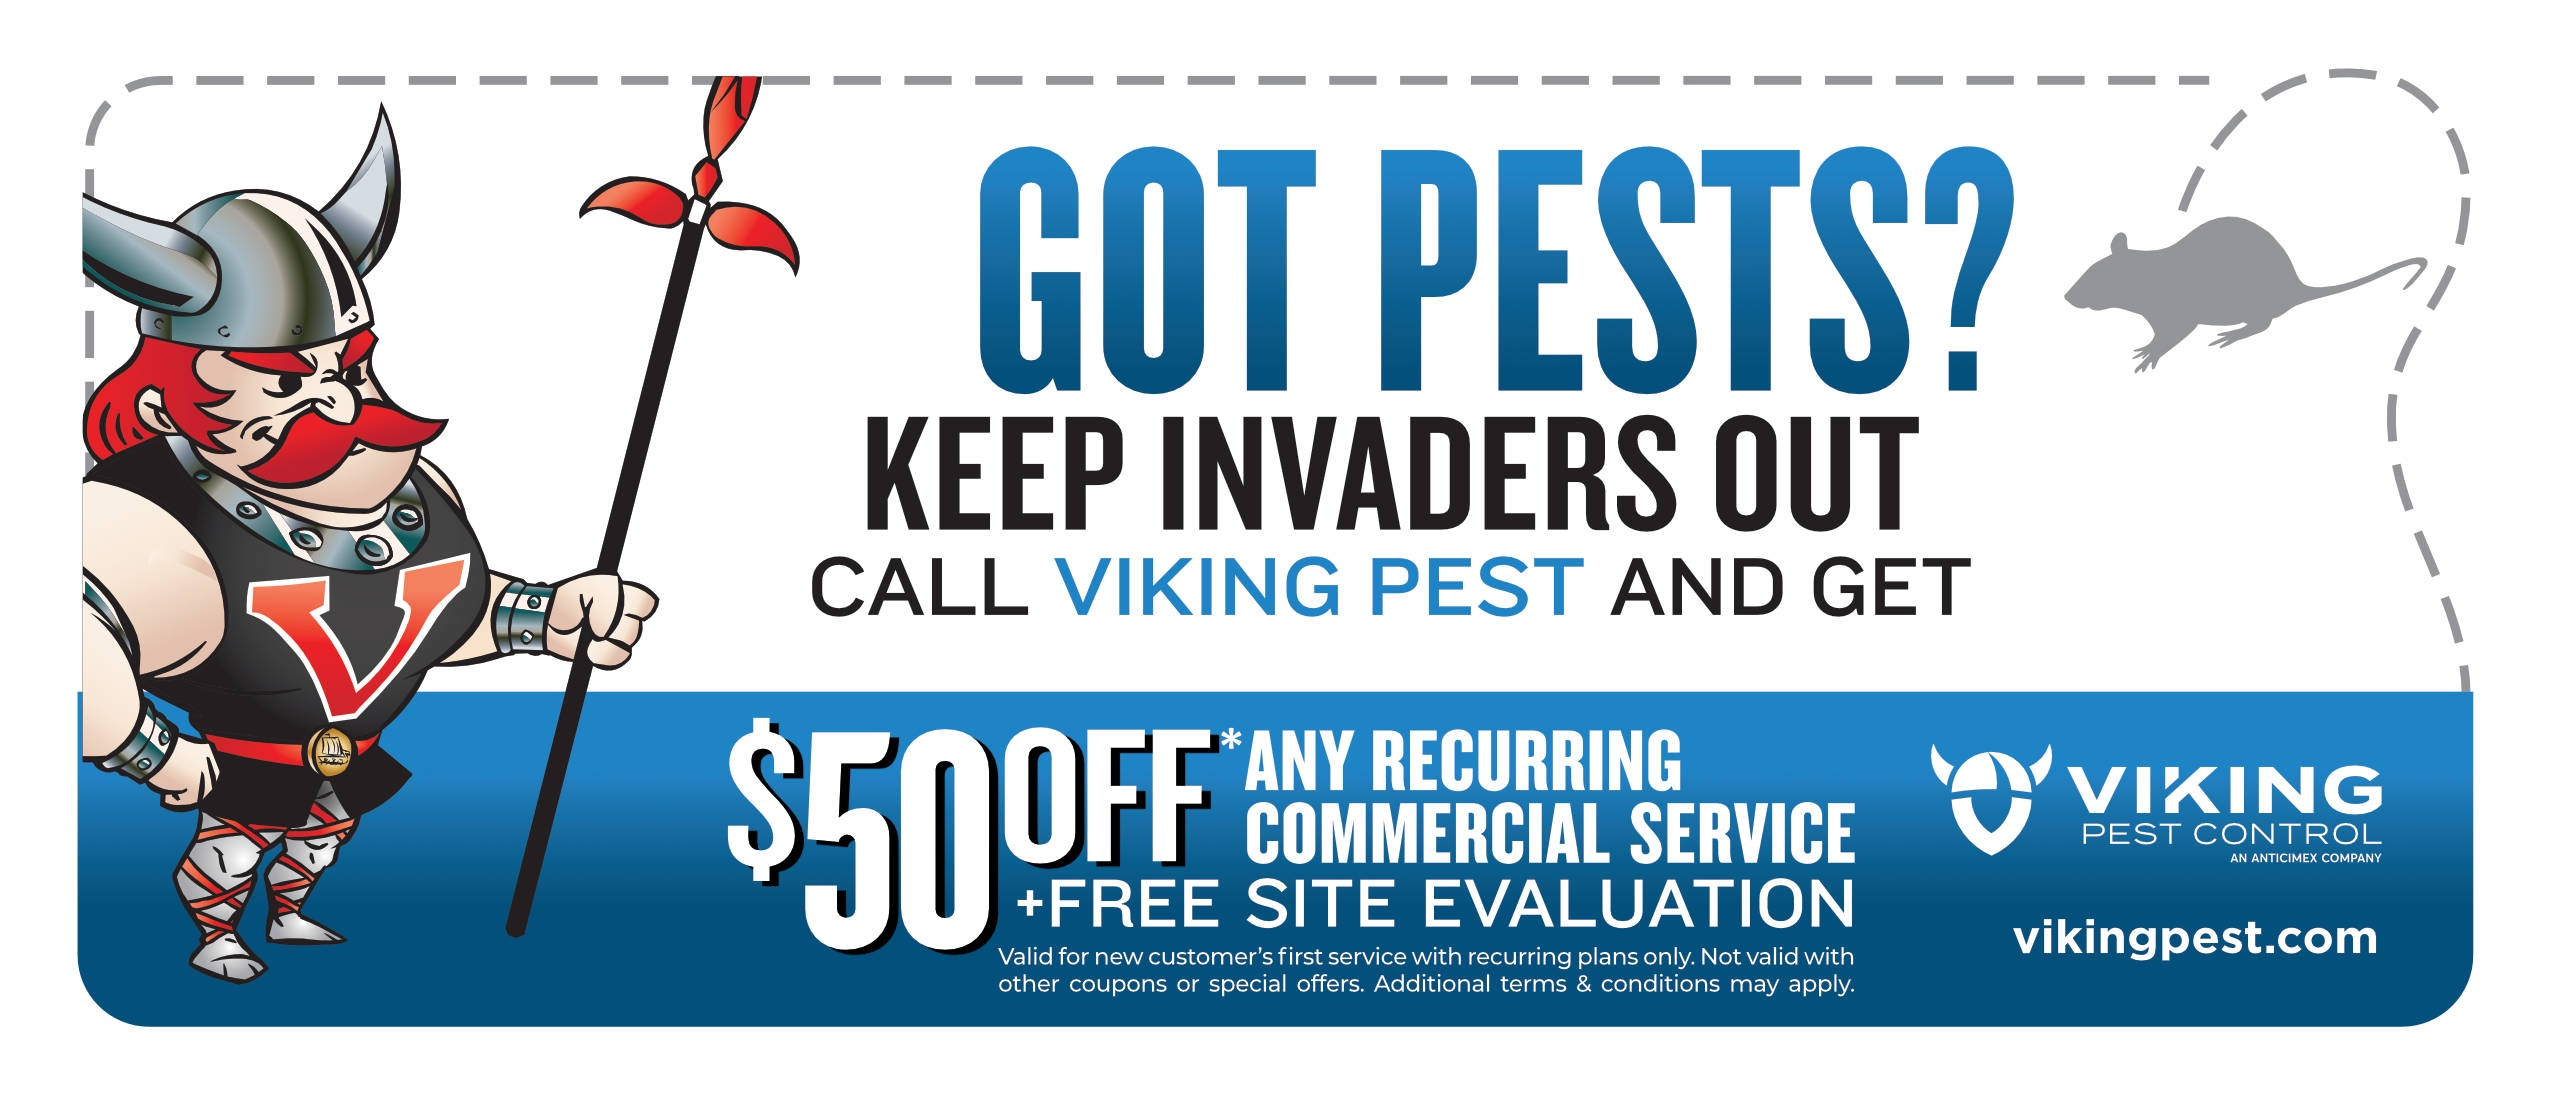 Save $50 on Commercial Pest Control Services